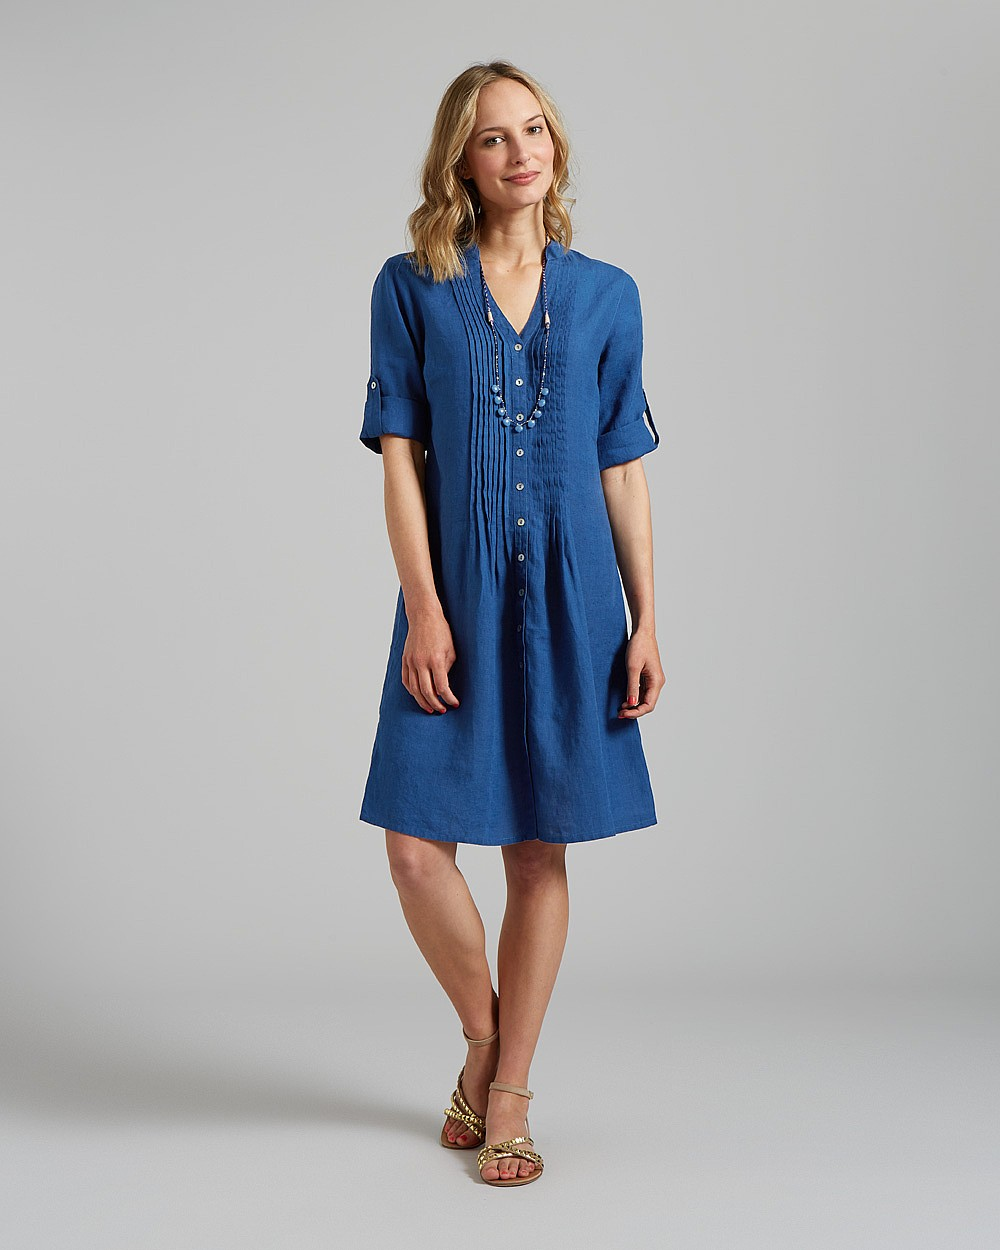 Linen pintuck dress, £95, East